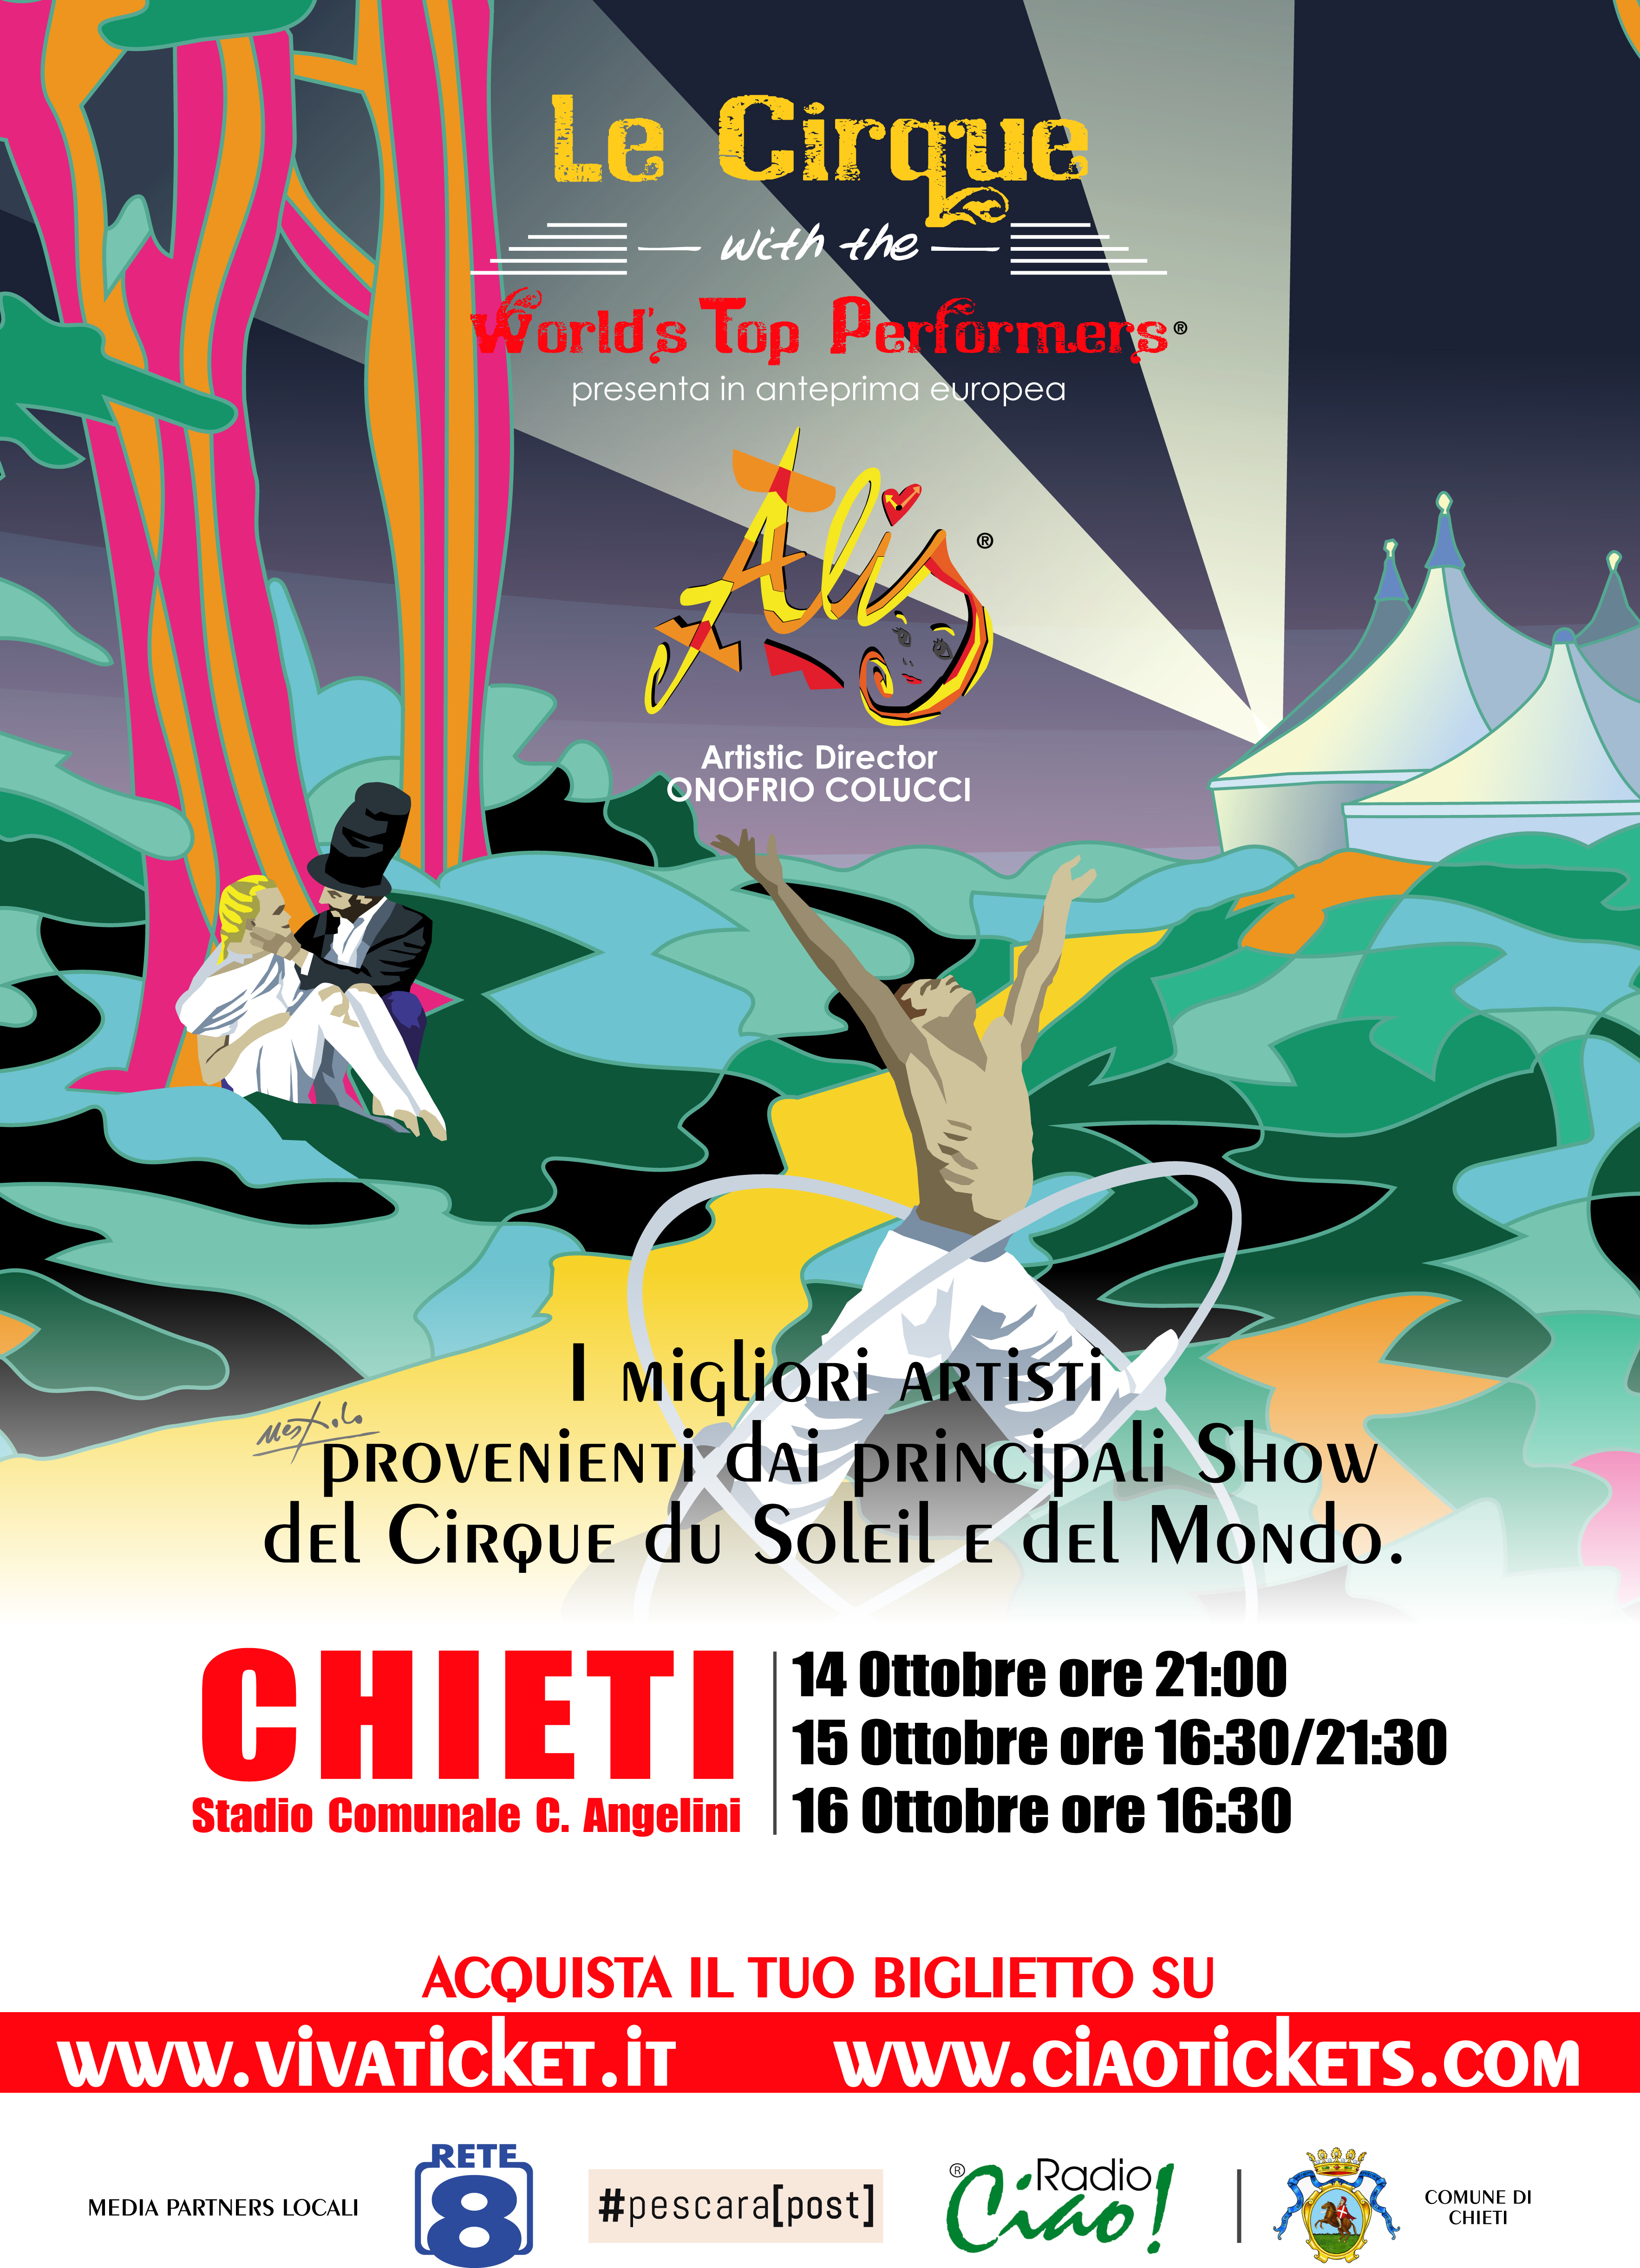 A Chieti le Cirque with the world's top performers